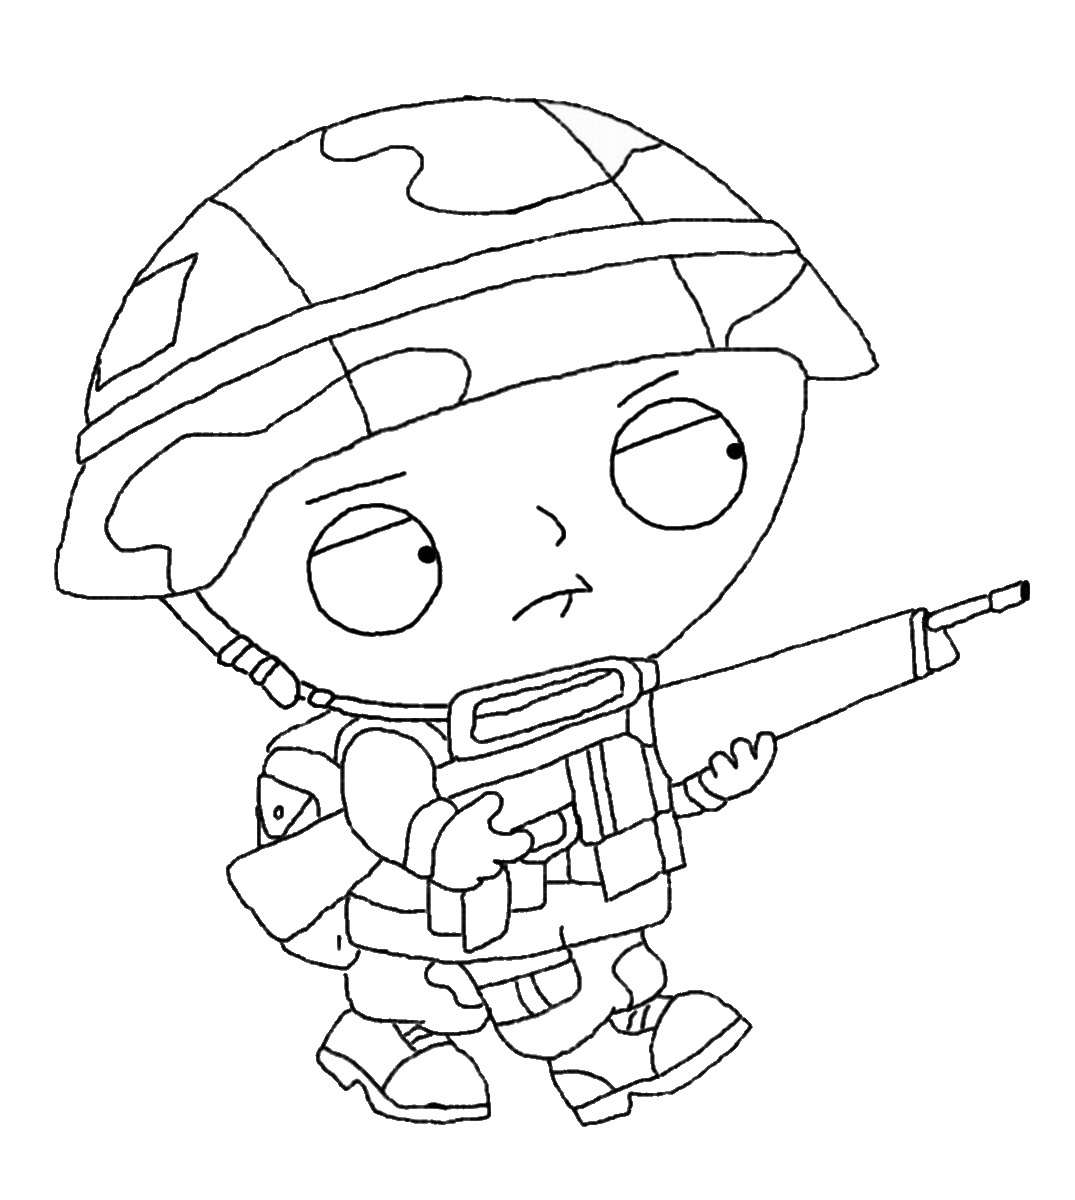 family guy coloring family guy coloring pages at getcoloringscom free family coloring guy